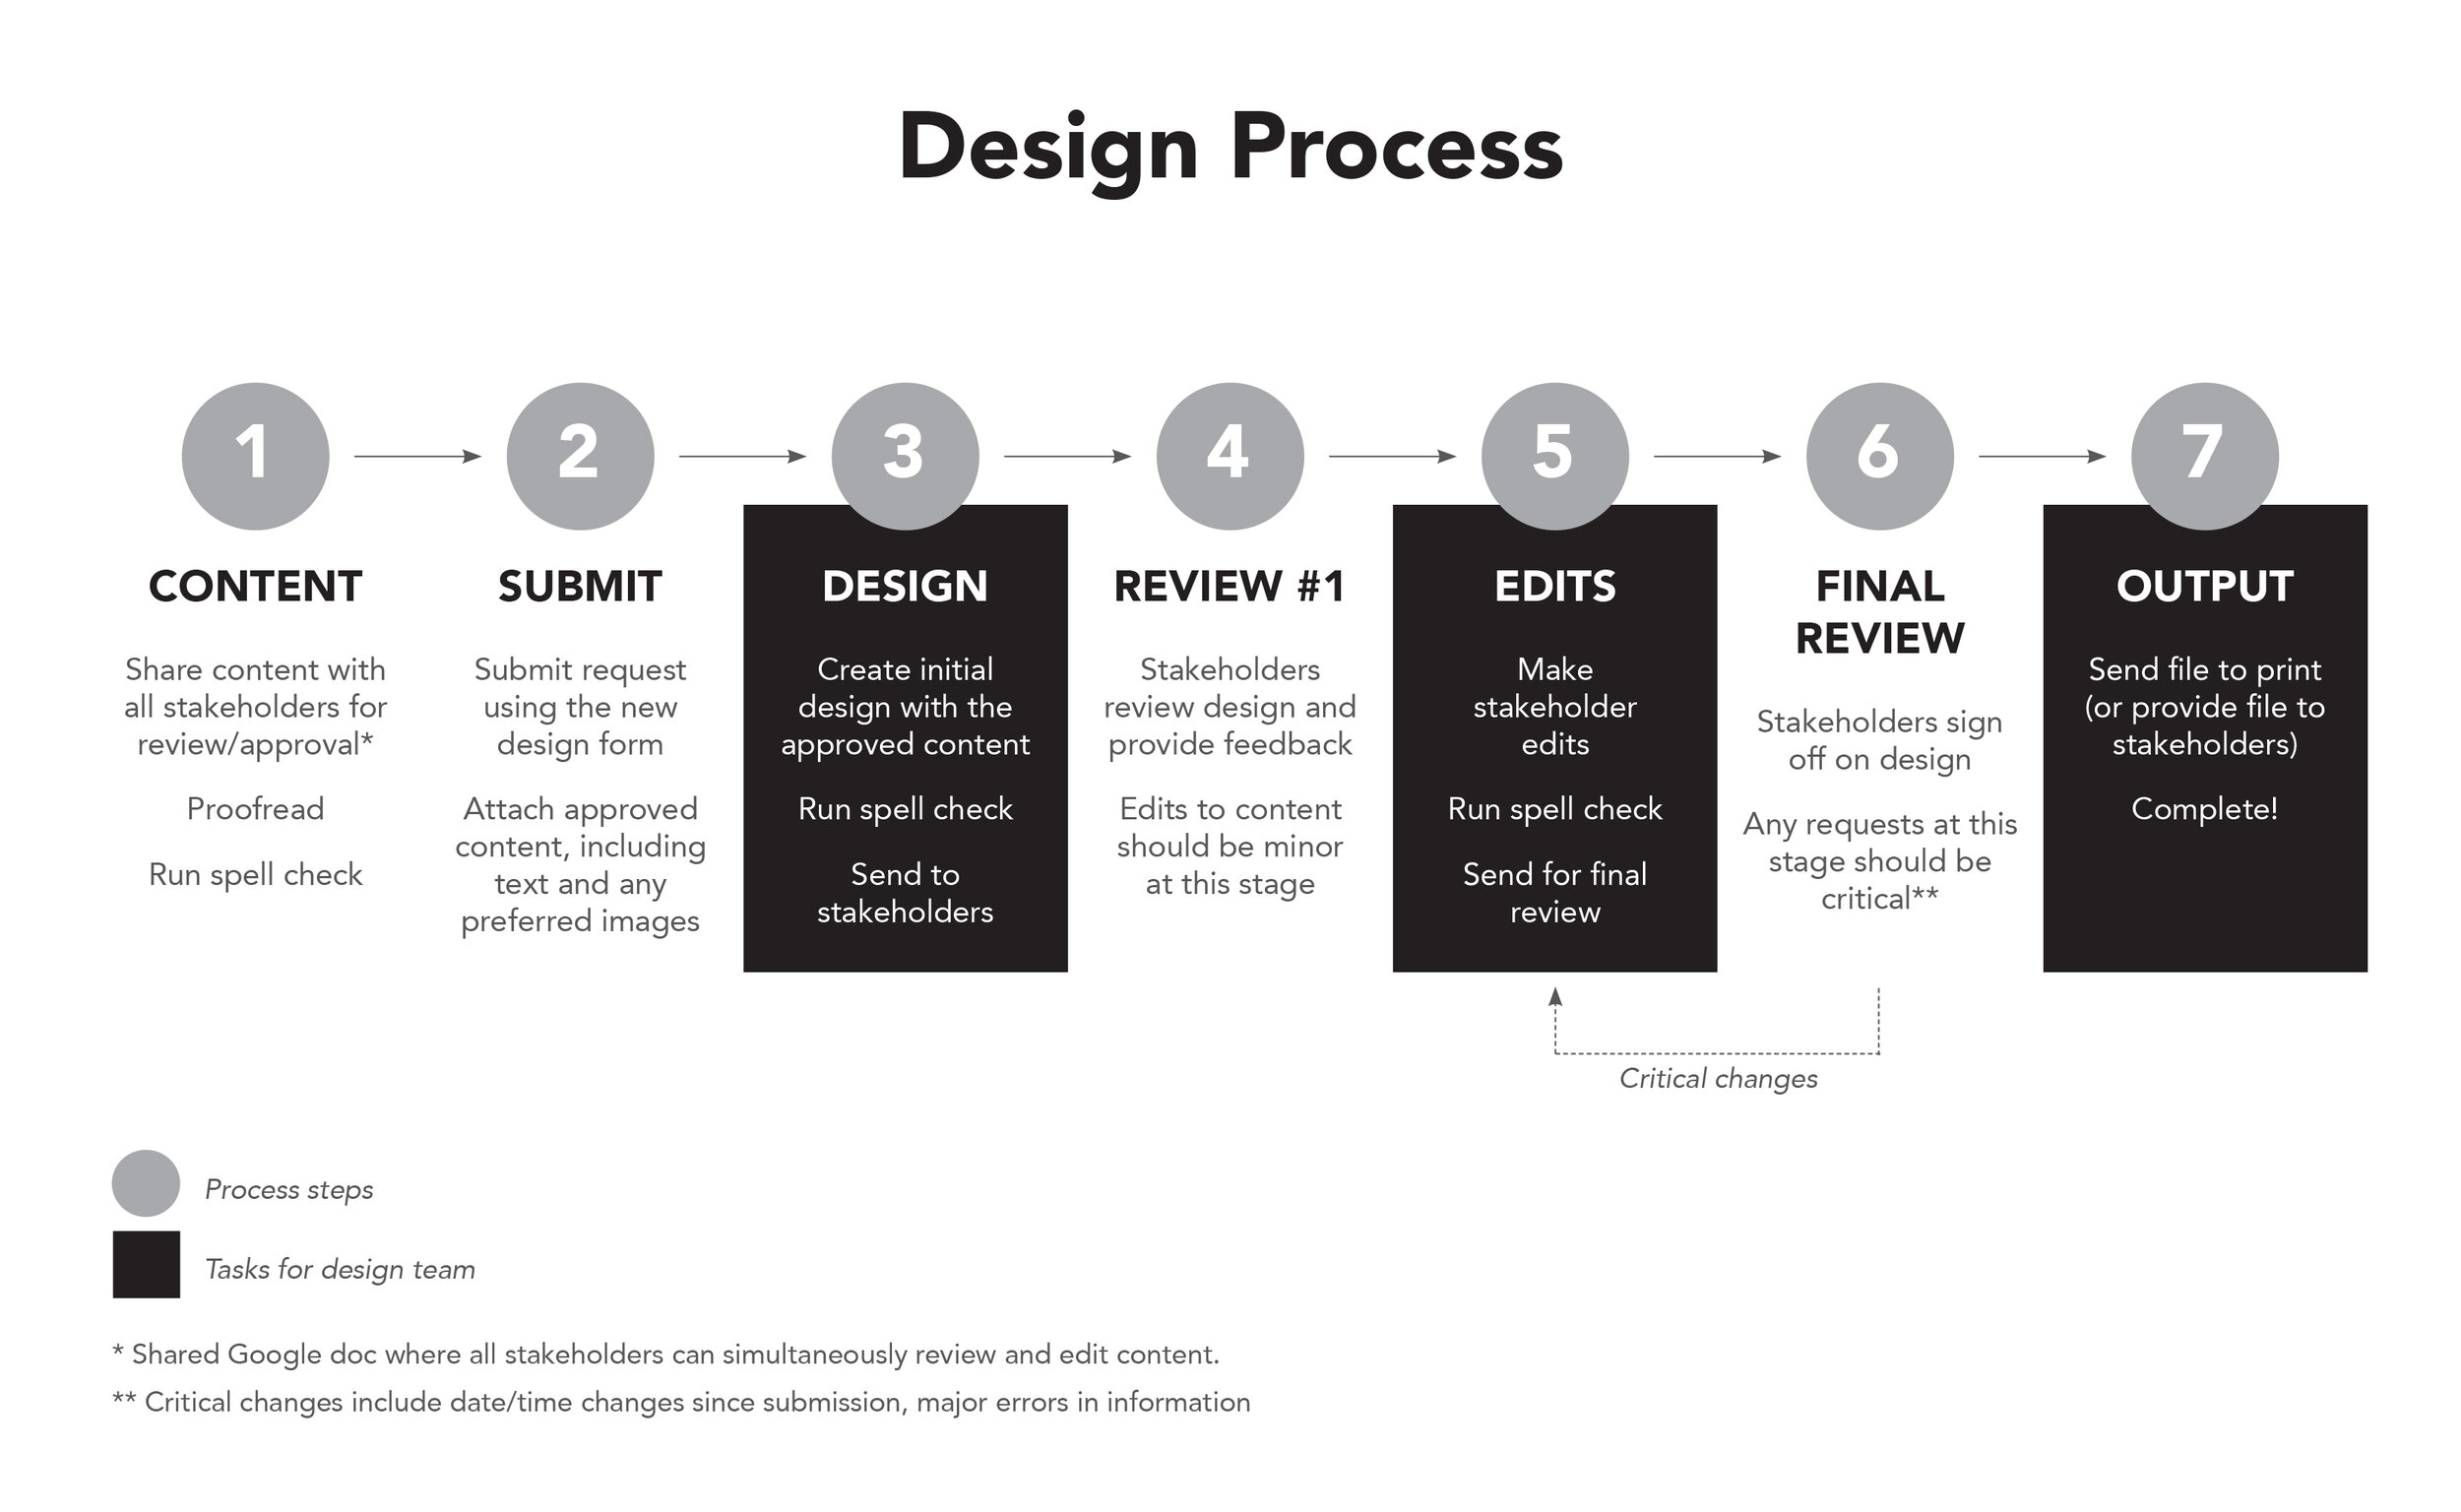 design-process-alt.jpg